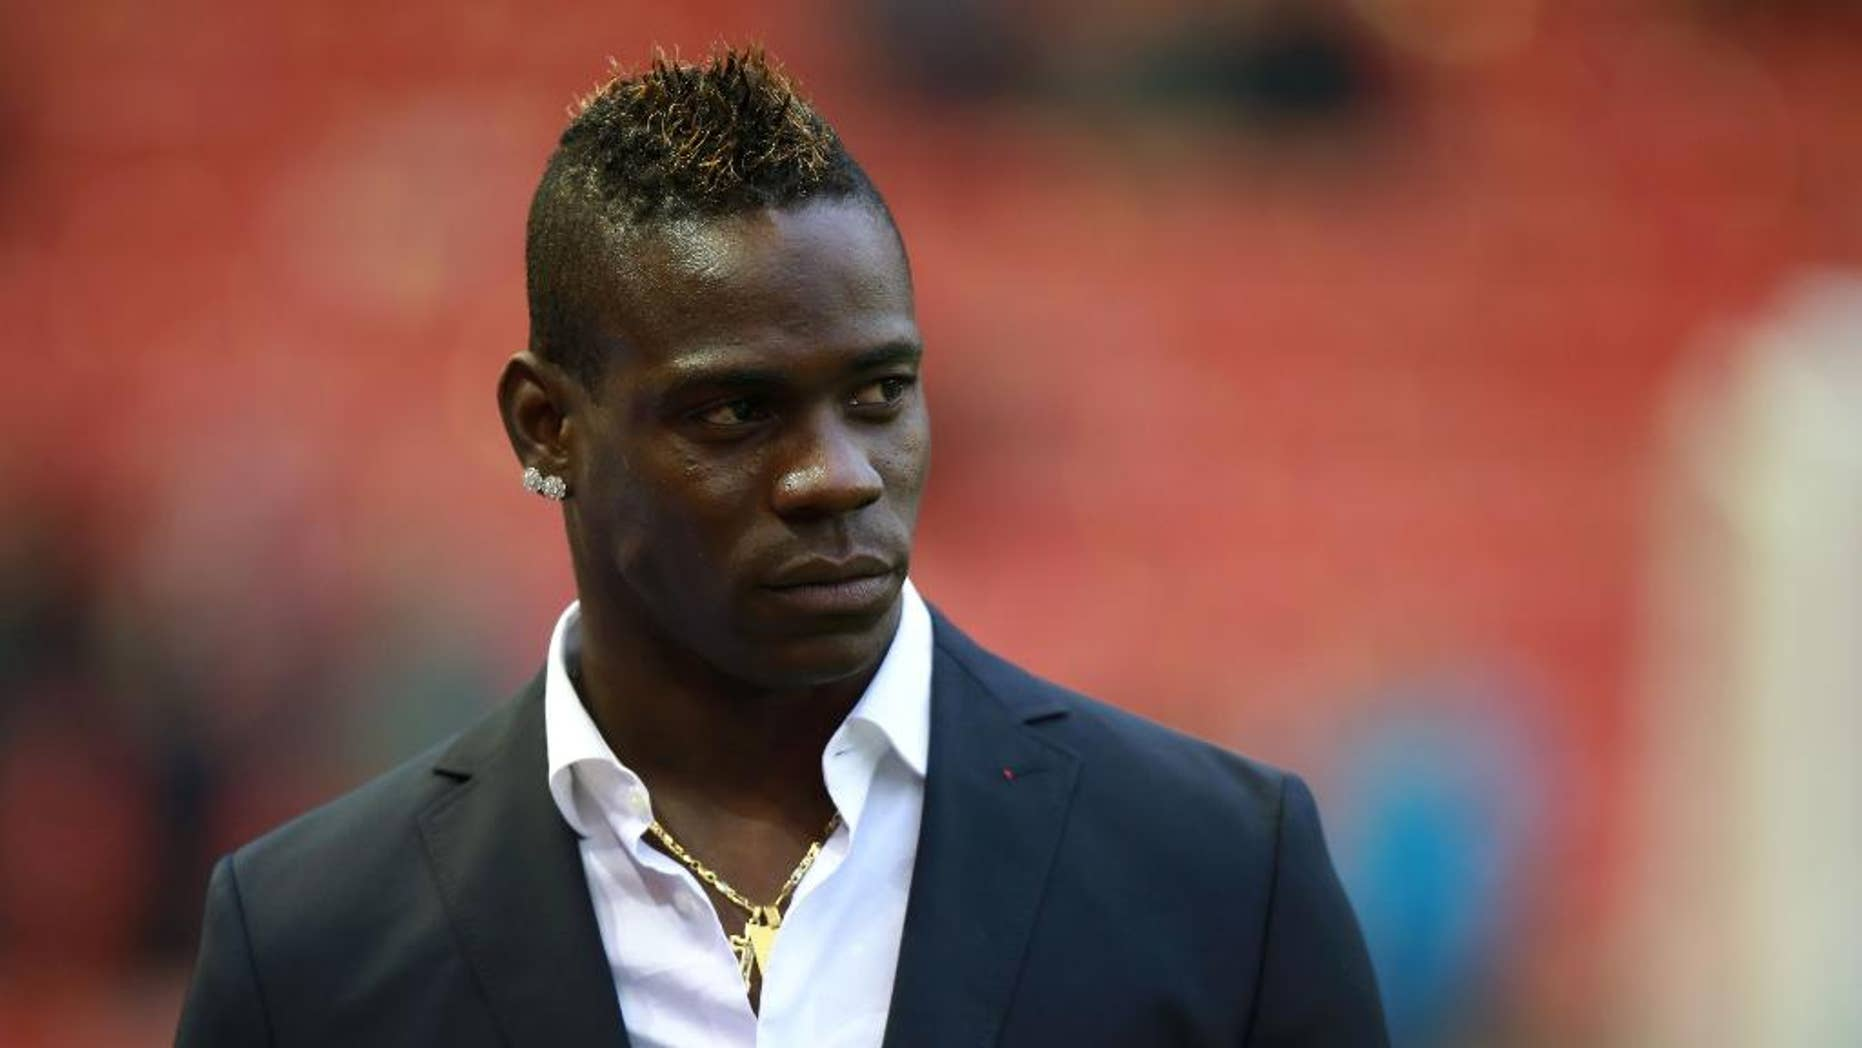 Liverpool's Mario Balotelli stands at the side of the pitch prior to the English Premier League soccer match between Liverpool and Stoke City at Anfield, Liverpool, England, Saturday Nov. 29, 2014. (AP Photo/PA, Peter Byrne) UNITED KINGDOM OUT